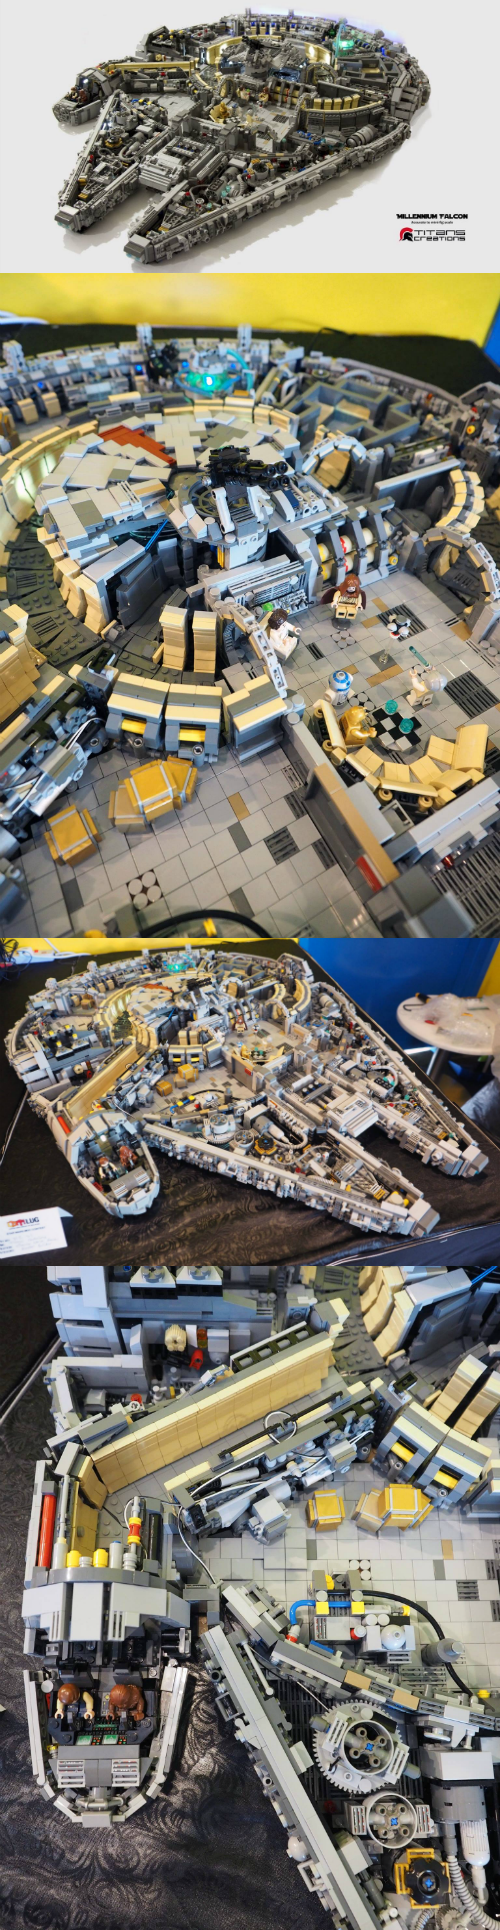 This LEGO Millennium Falcon is Made of More Than 10,000 Pieces